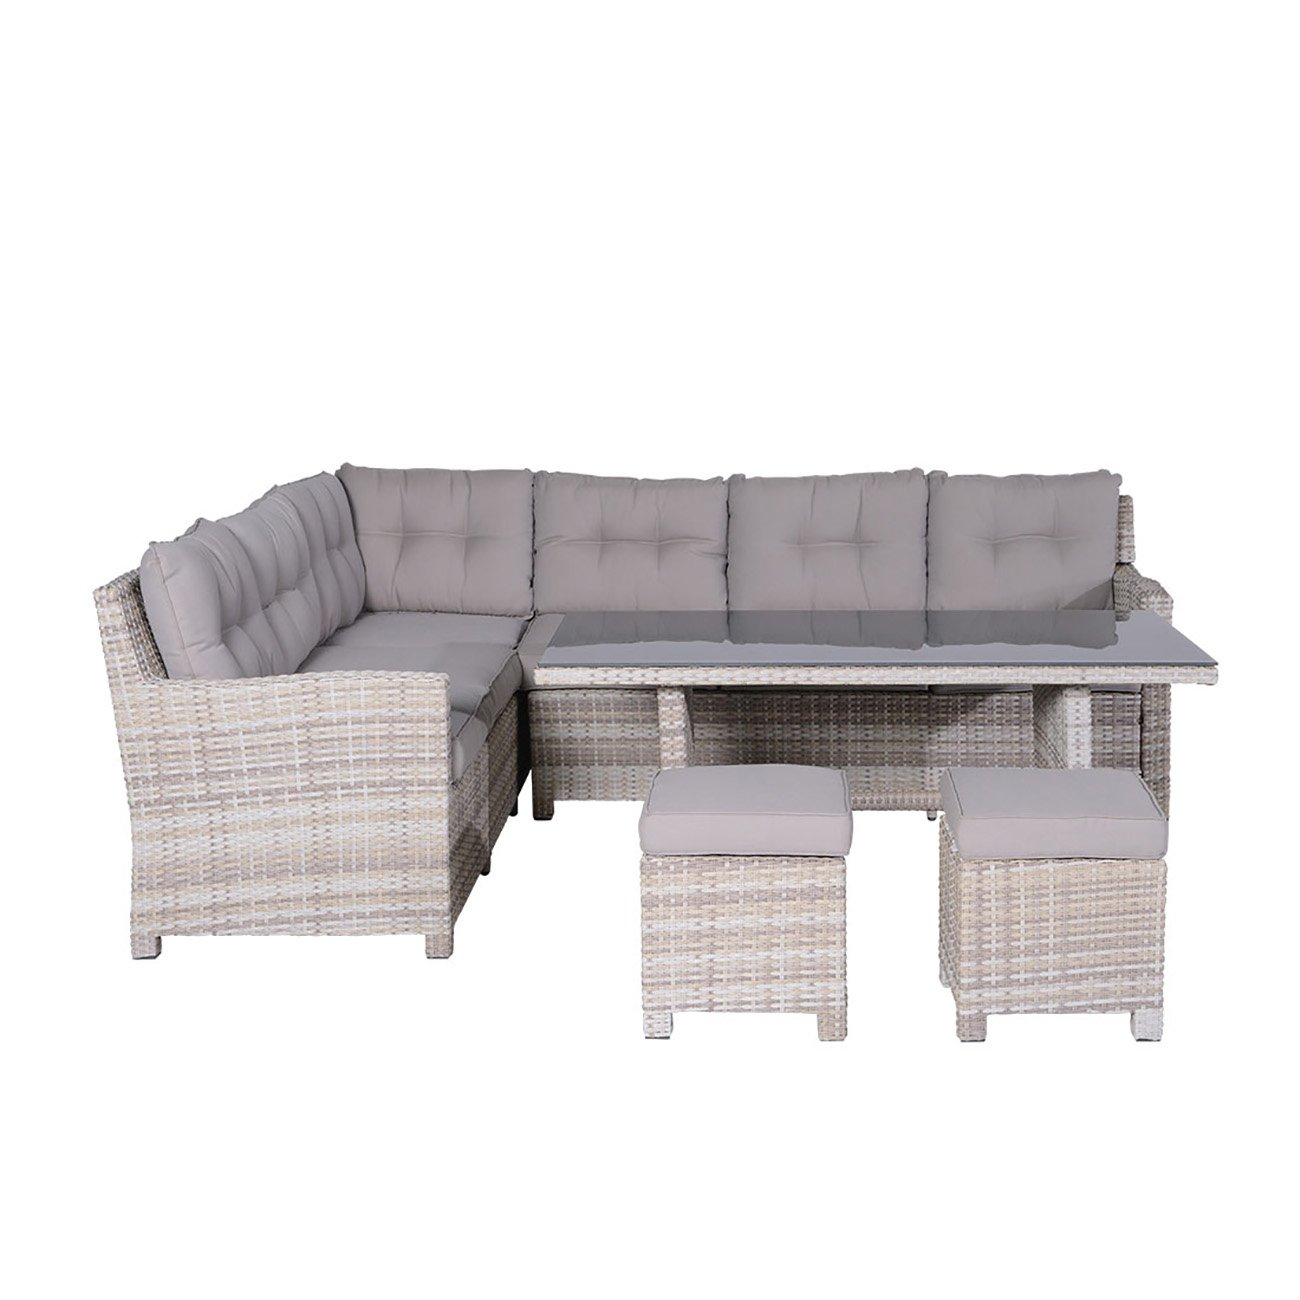 OUTLIV. Blue Bird Loungeset 5tlg Geflecht Passion Willow / Kissen Sand Lounge Set